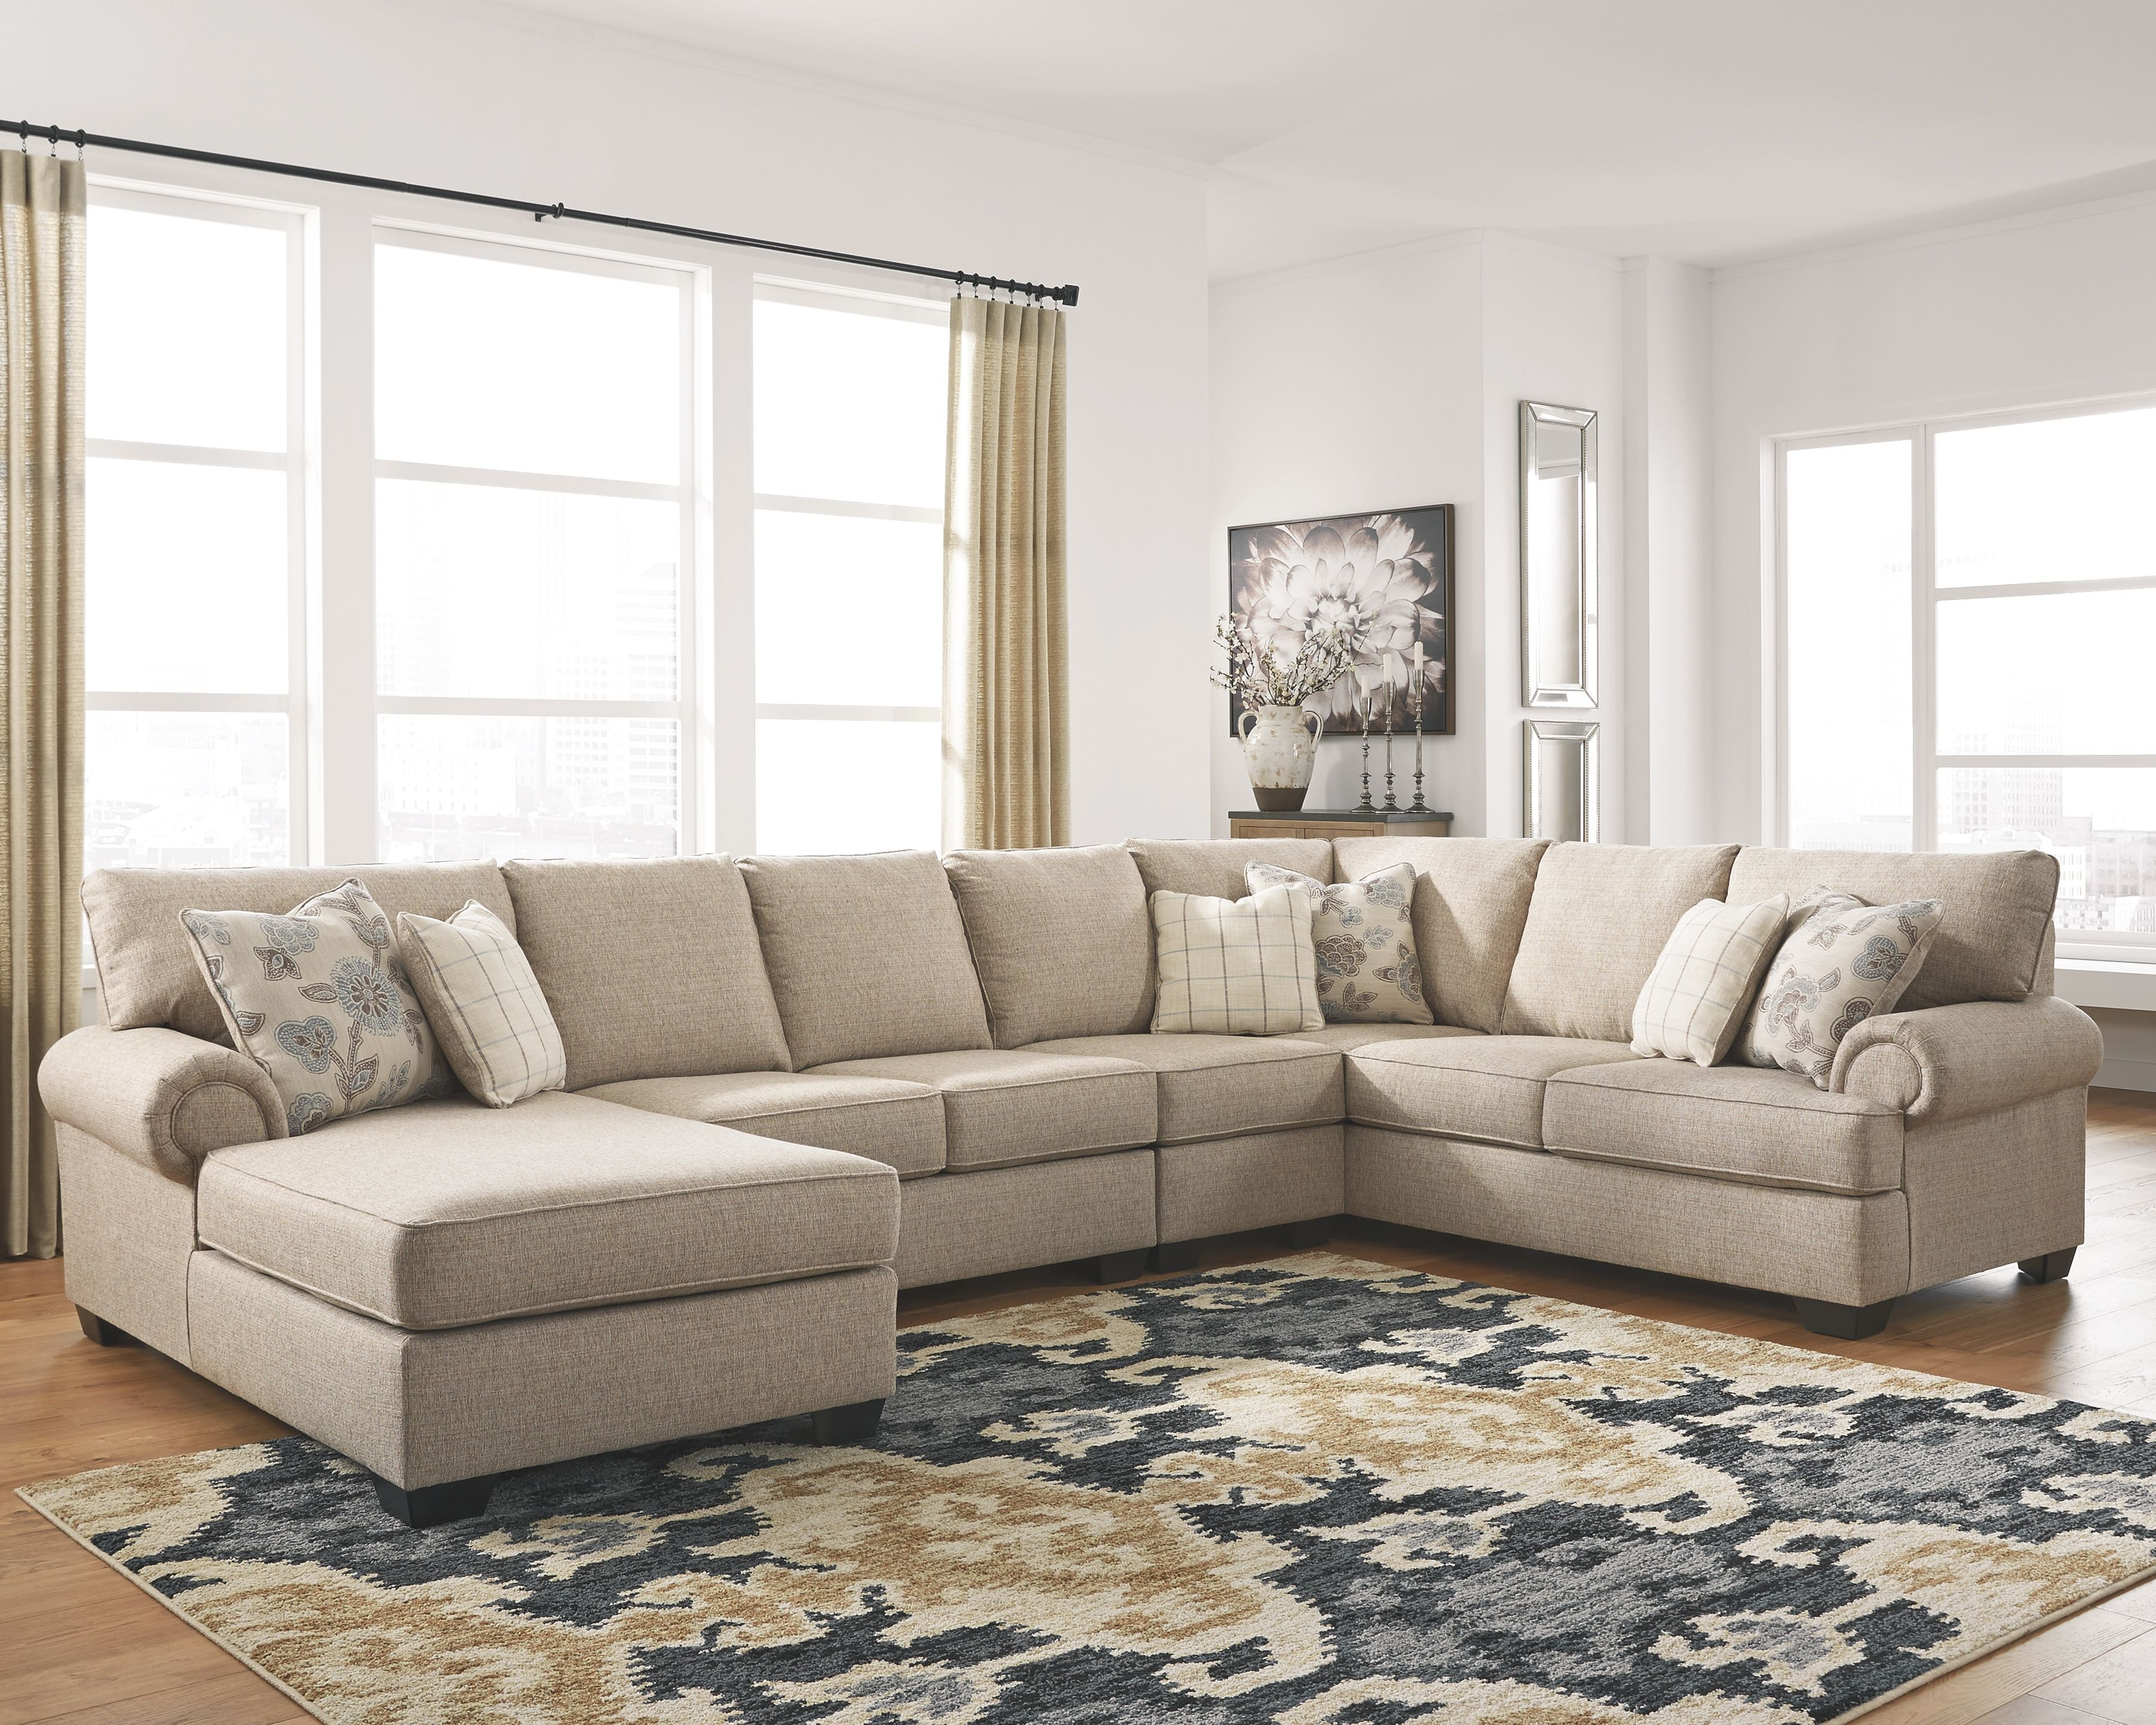 Baceno 4-Piece Sectional, Hemp | Products in 2019 | Living ...